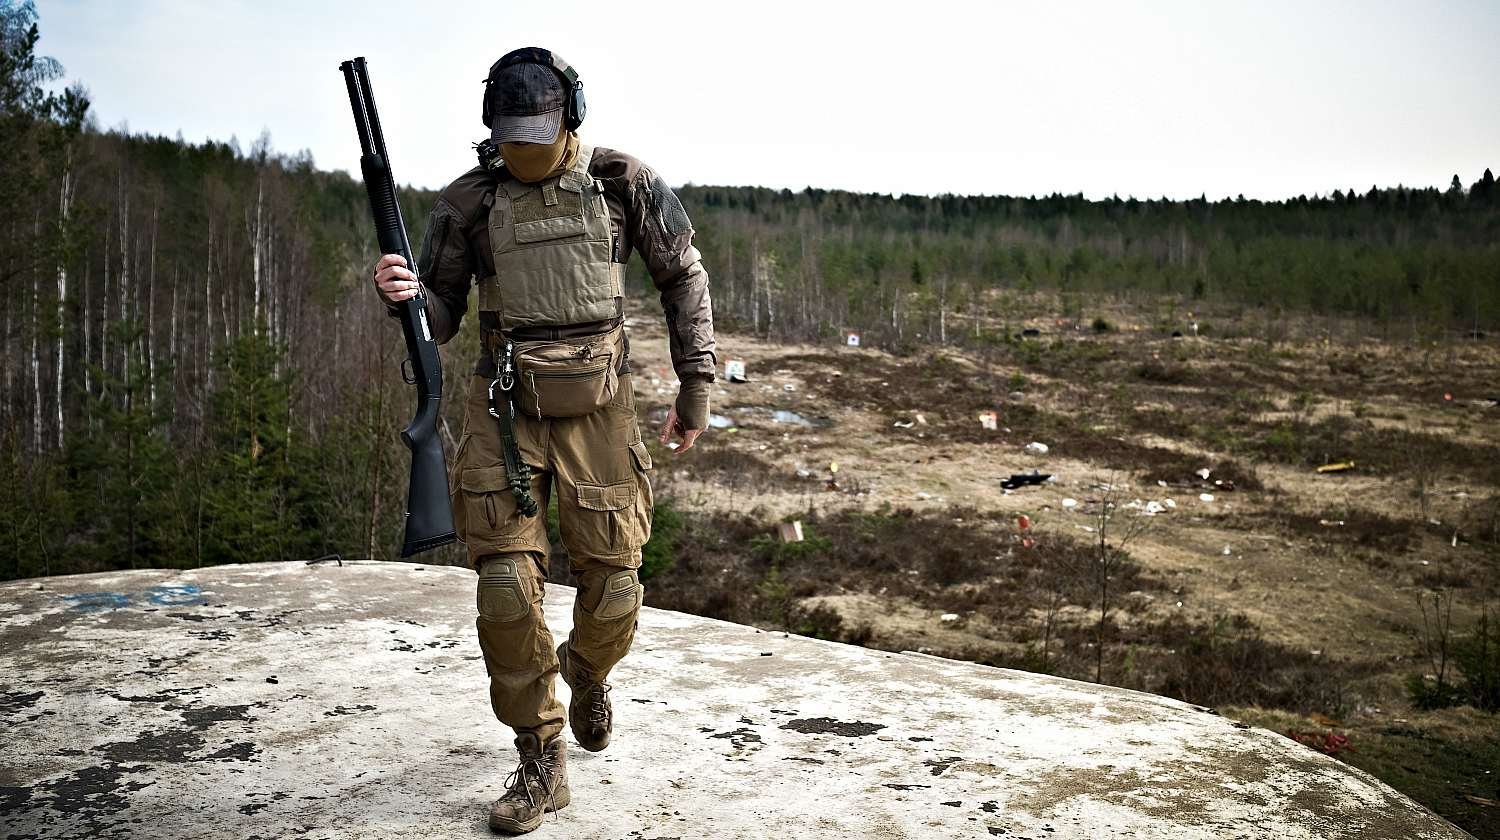 Young militarist man in army uniform with tactical vest | The Tactical Shotgun Scabbard By Beez Combat Systems | Featured